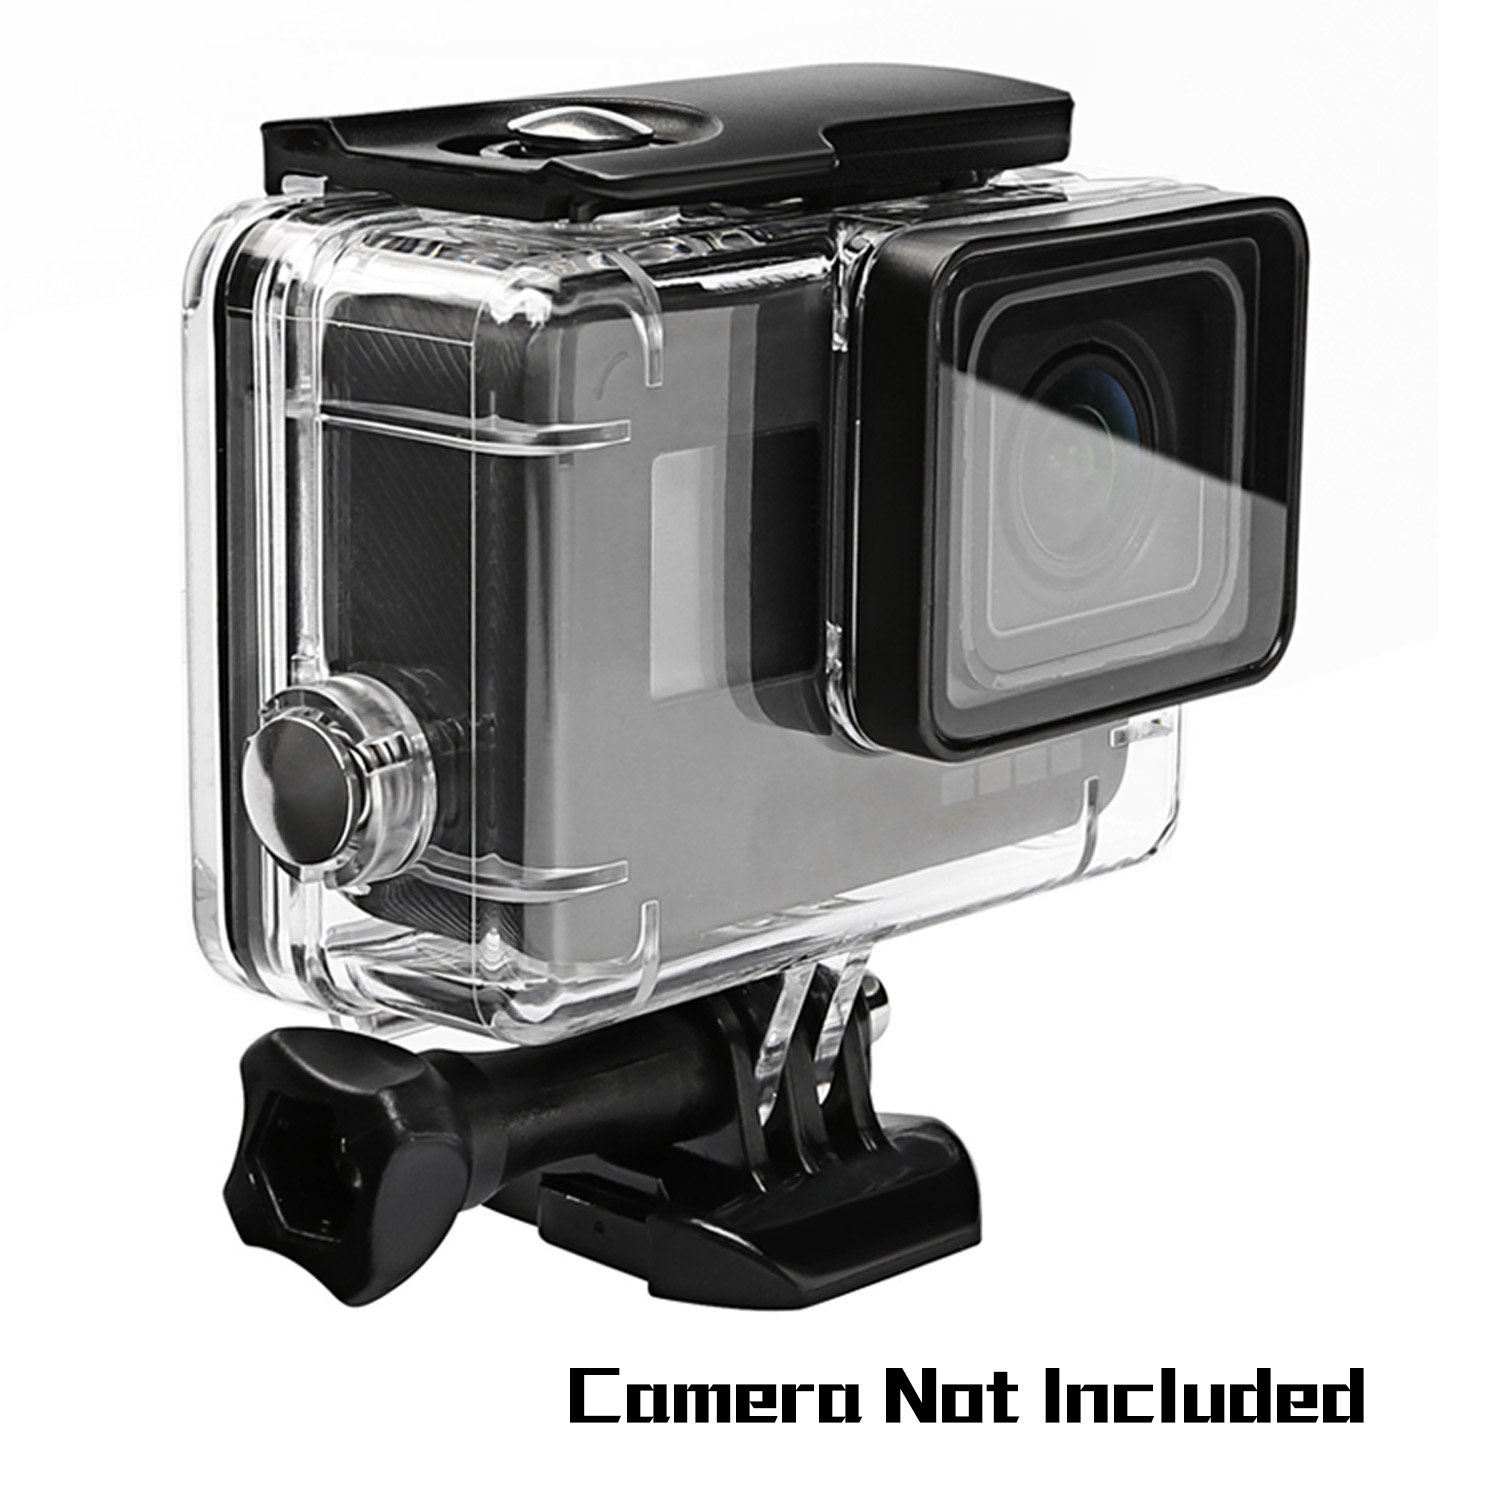 Oumers Waterproof Diving Case For GoPro Hero5/Gopro Hero 6 Black, Replacement Waterproof Housing Cover, Protective Case, 45M Underwater Diving Swimming, Camera Accessories